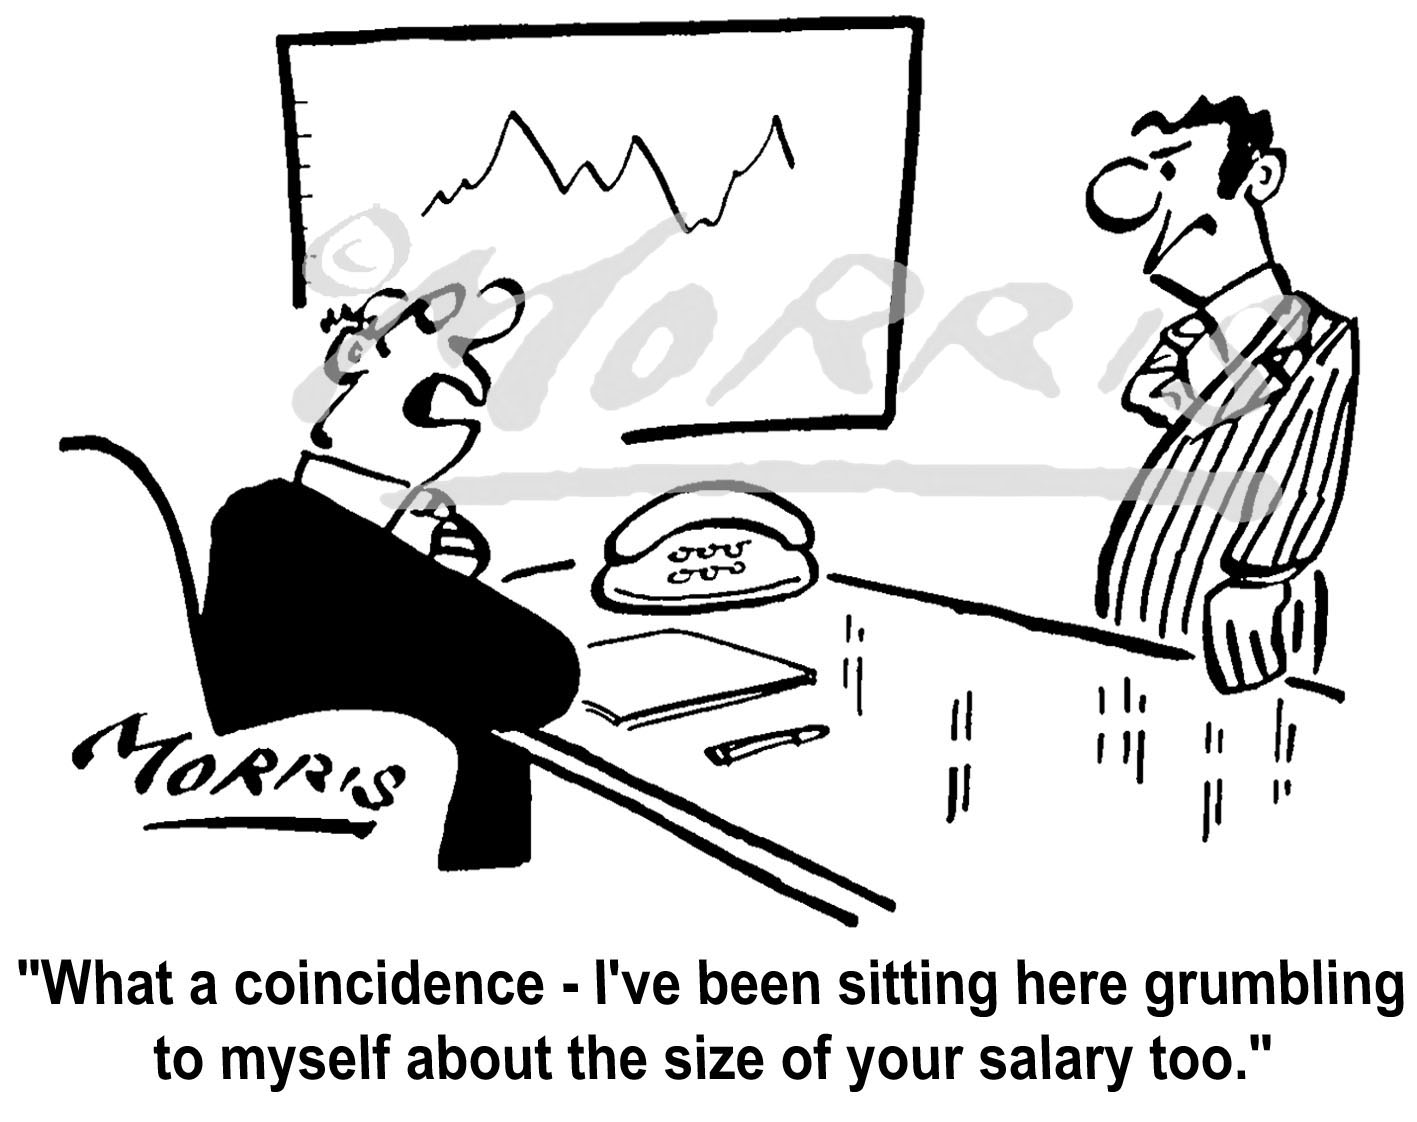 Office manager employee salary cartoon Ref: 4277bw